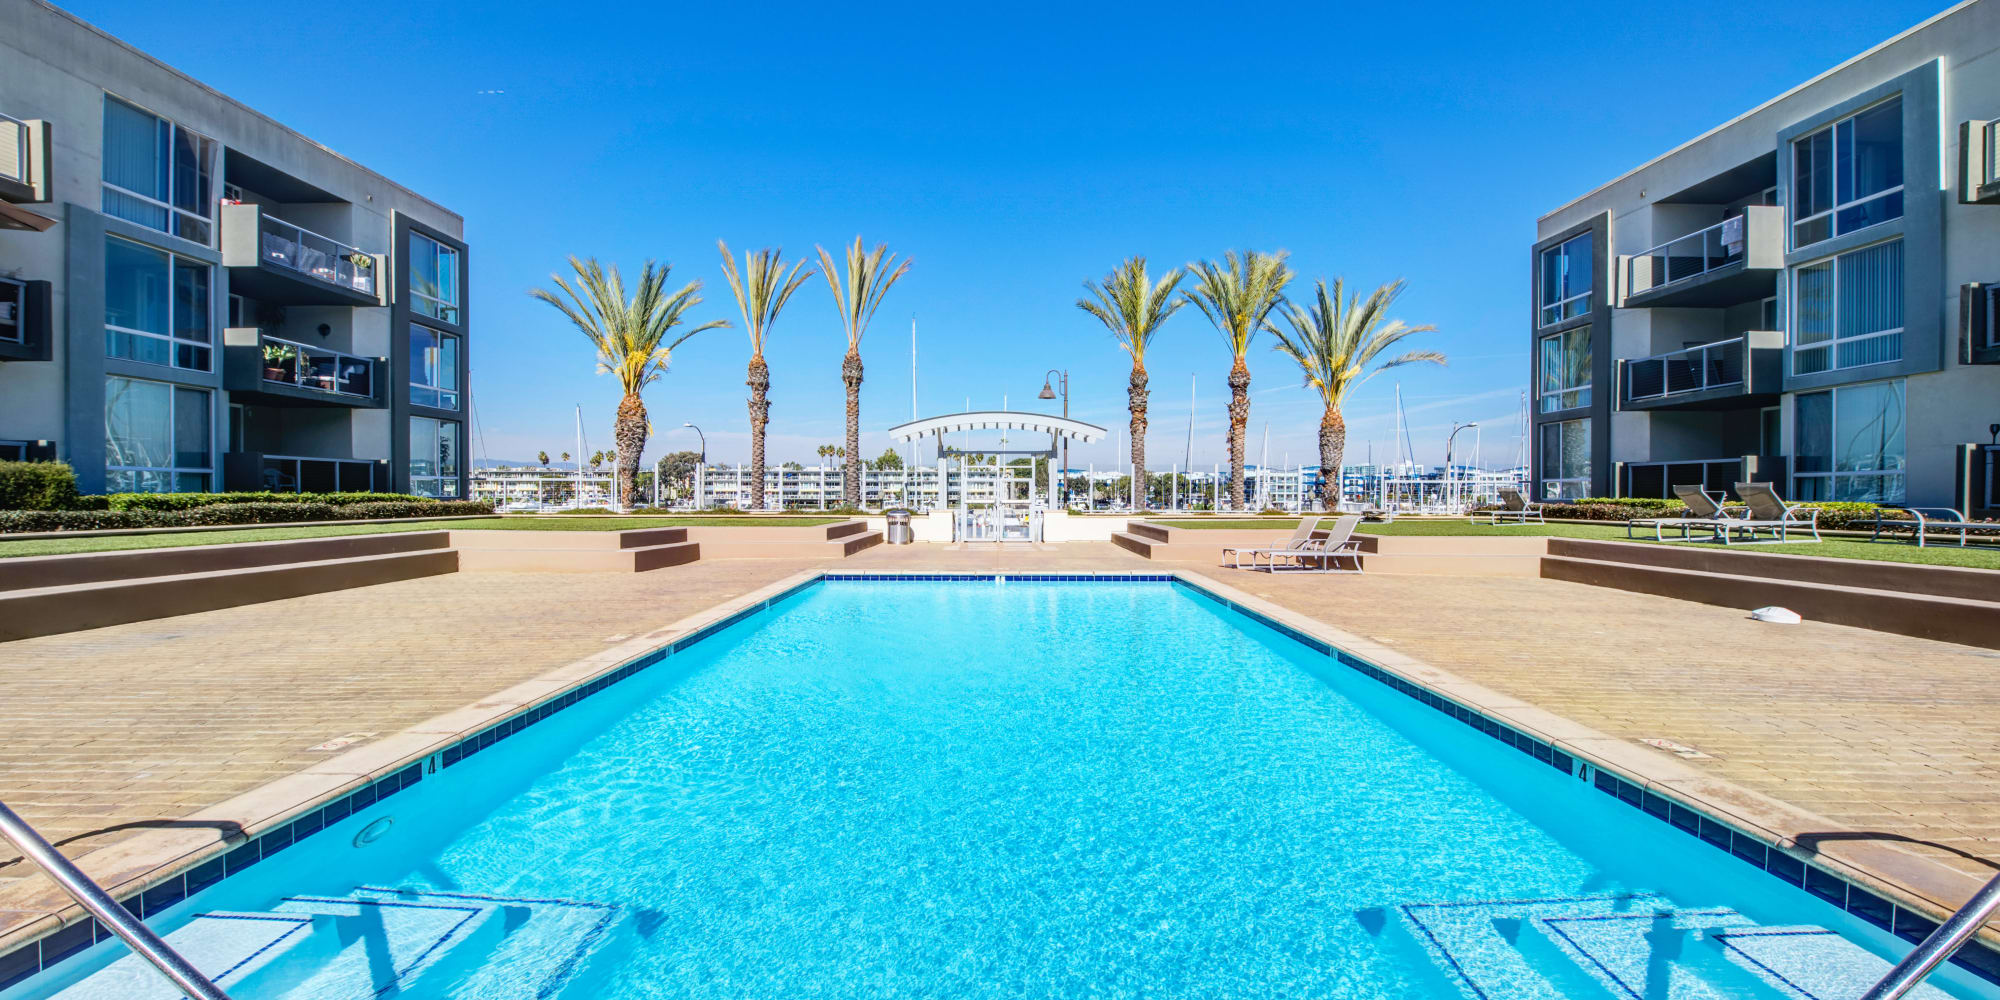 Gorgeous day at the pool at Waters Edge at Marina Harbor in Marina Del Rey, California